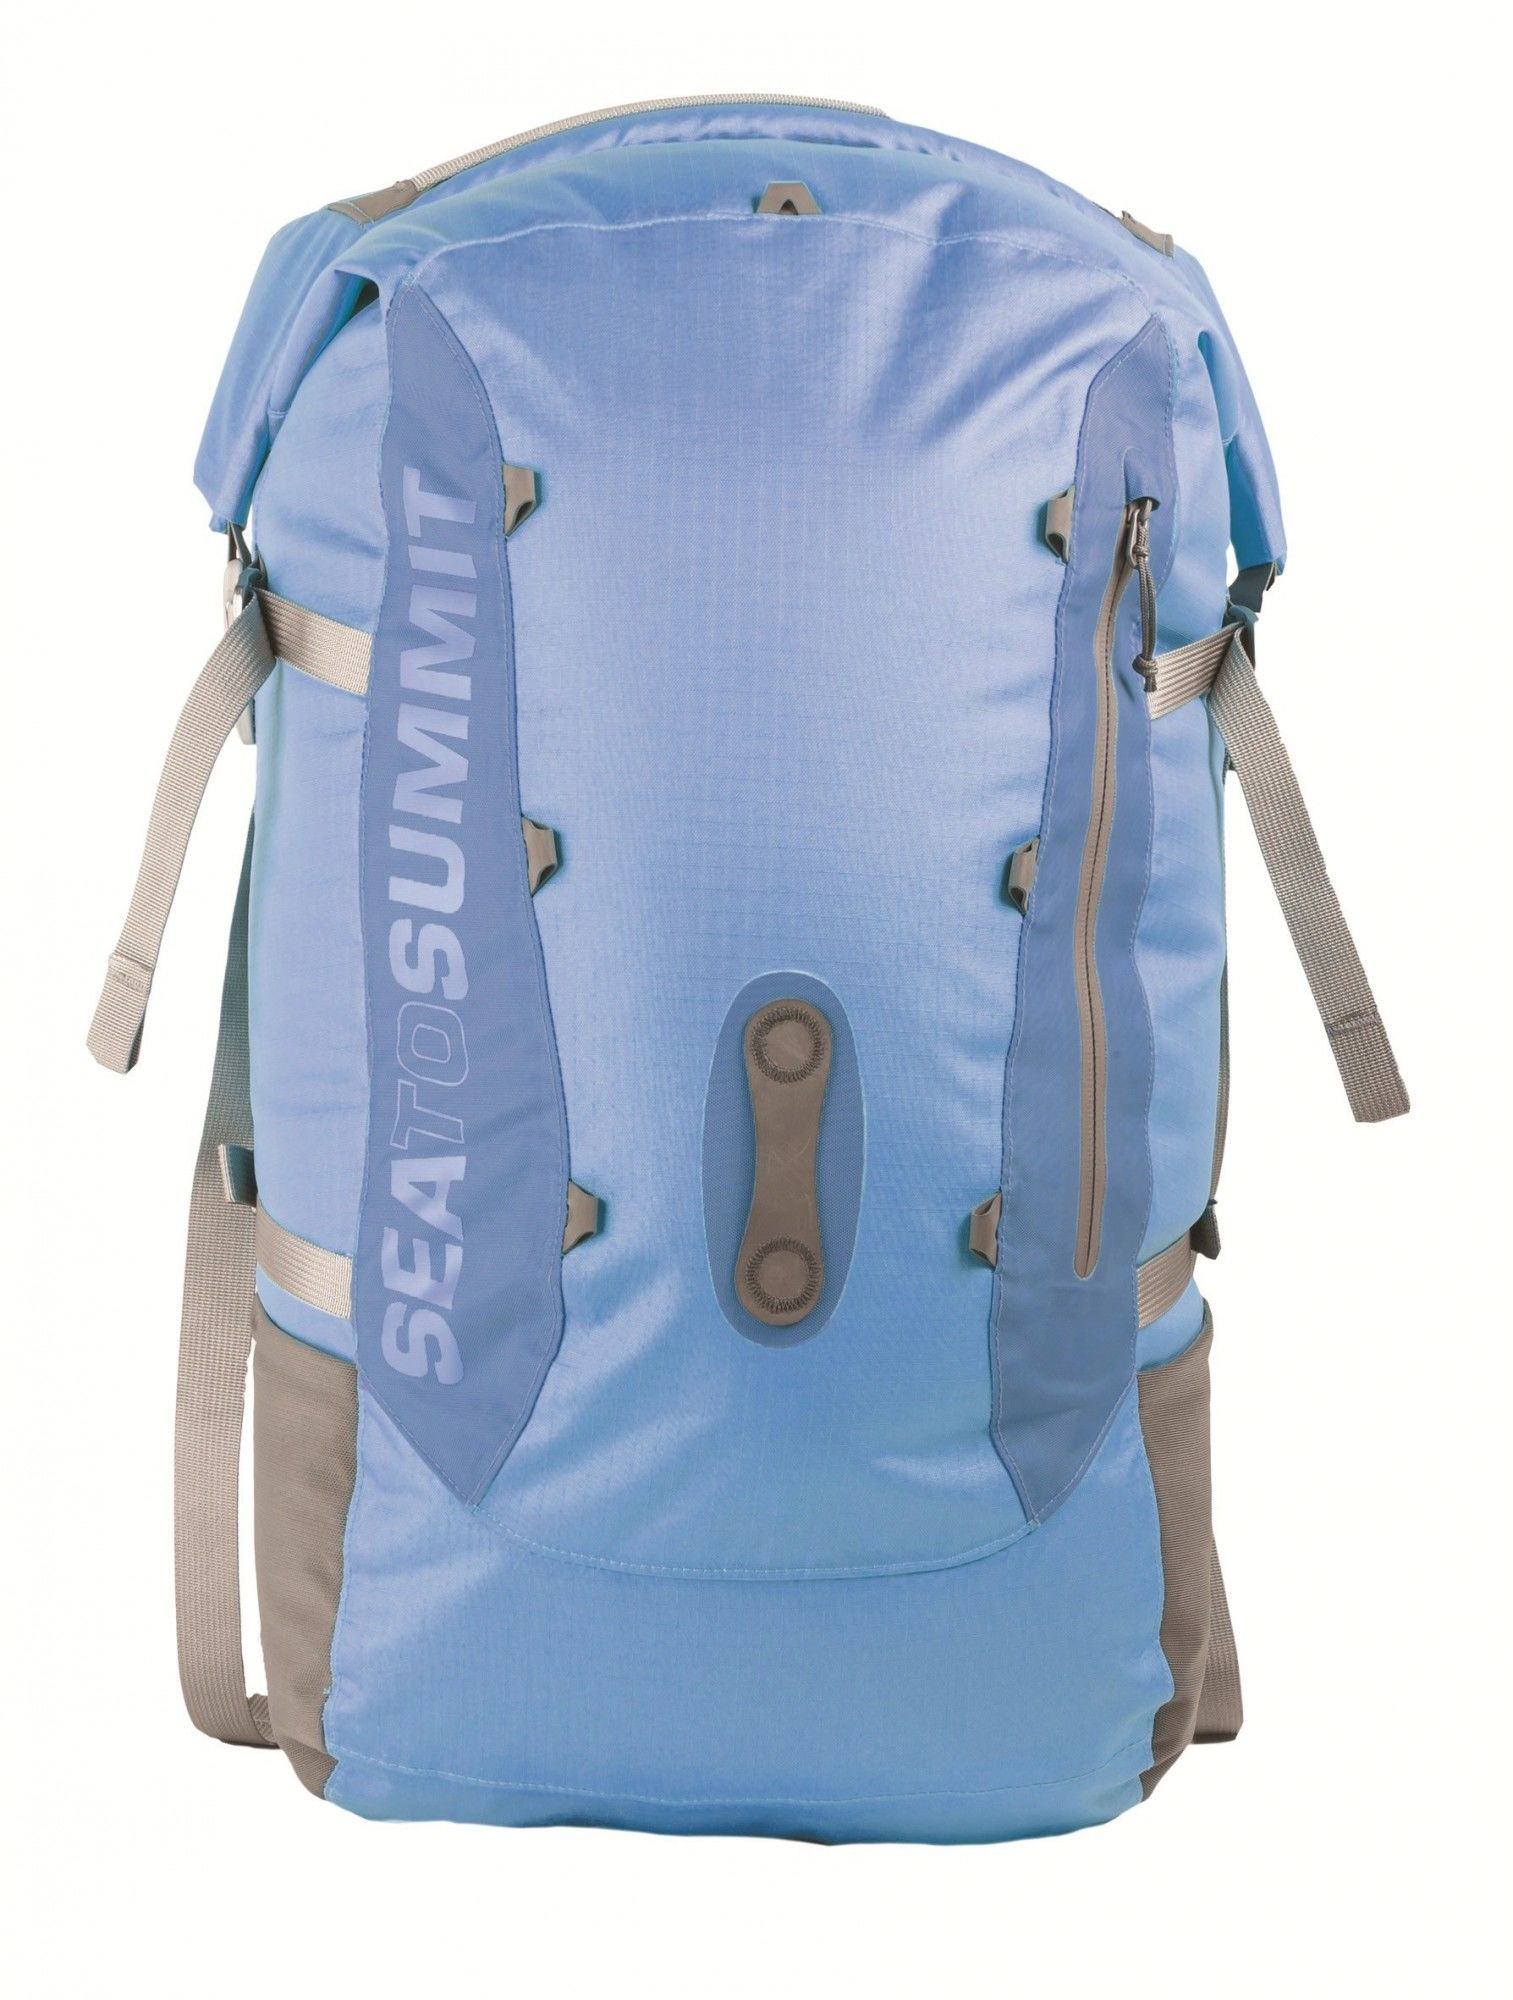 Sea to Summit Flow Drypack 35L |  Alpin- & Trekkingrucksack